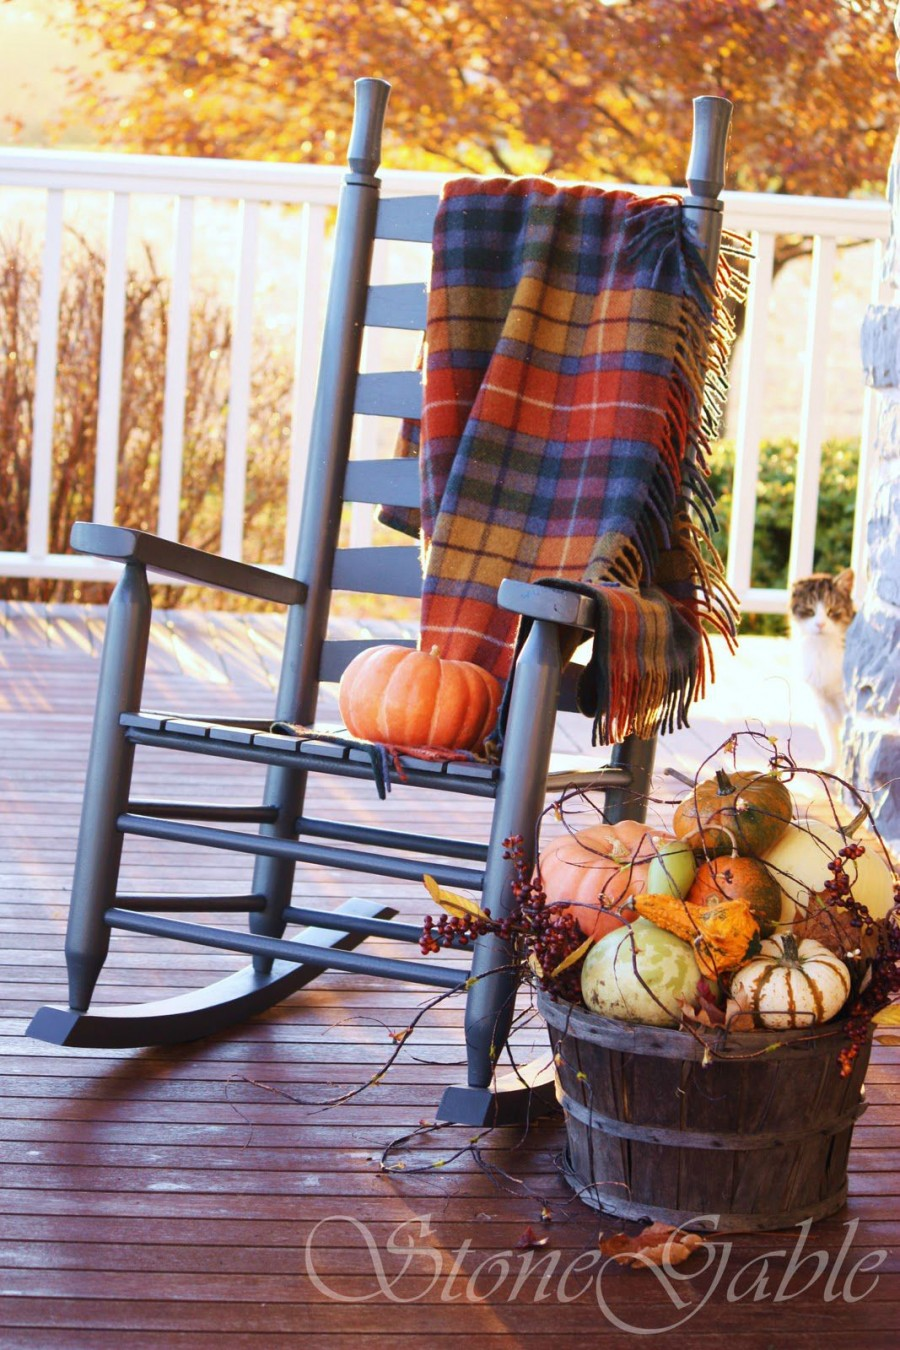 10 THINGS TO DO NOW FOR FALL-fall inspiration-stonegableblog.com